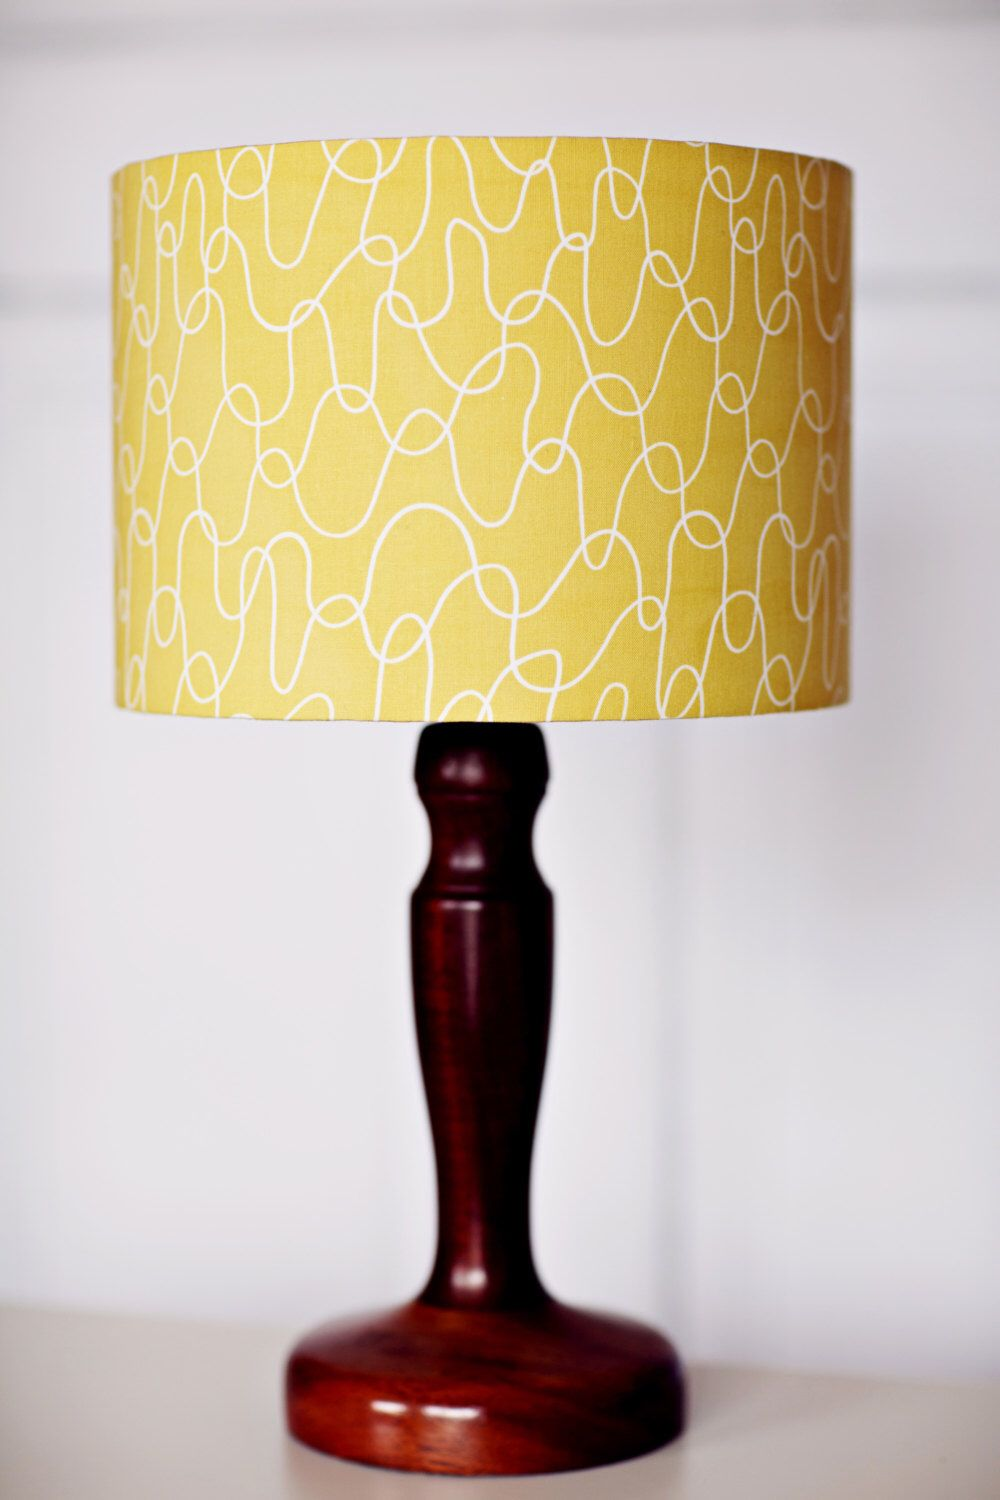 Lampshade scandinavian lamp yellow lamp shade mustard home decor lampshade scandinavian lamp yellow lamp shade mustard home decor retro decor bedroom lighting light shade lamp shade retro lampshade aloadofball Gallery